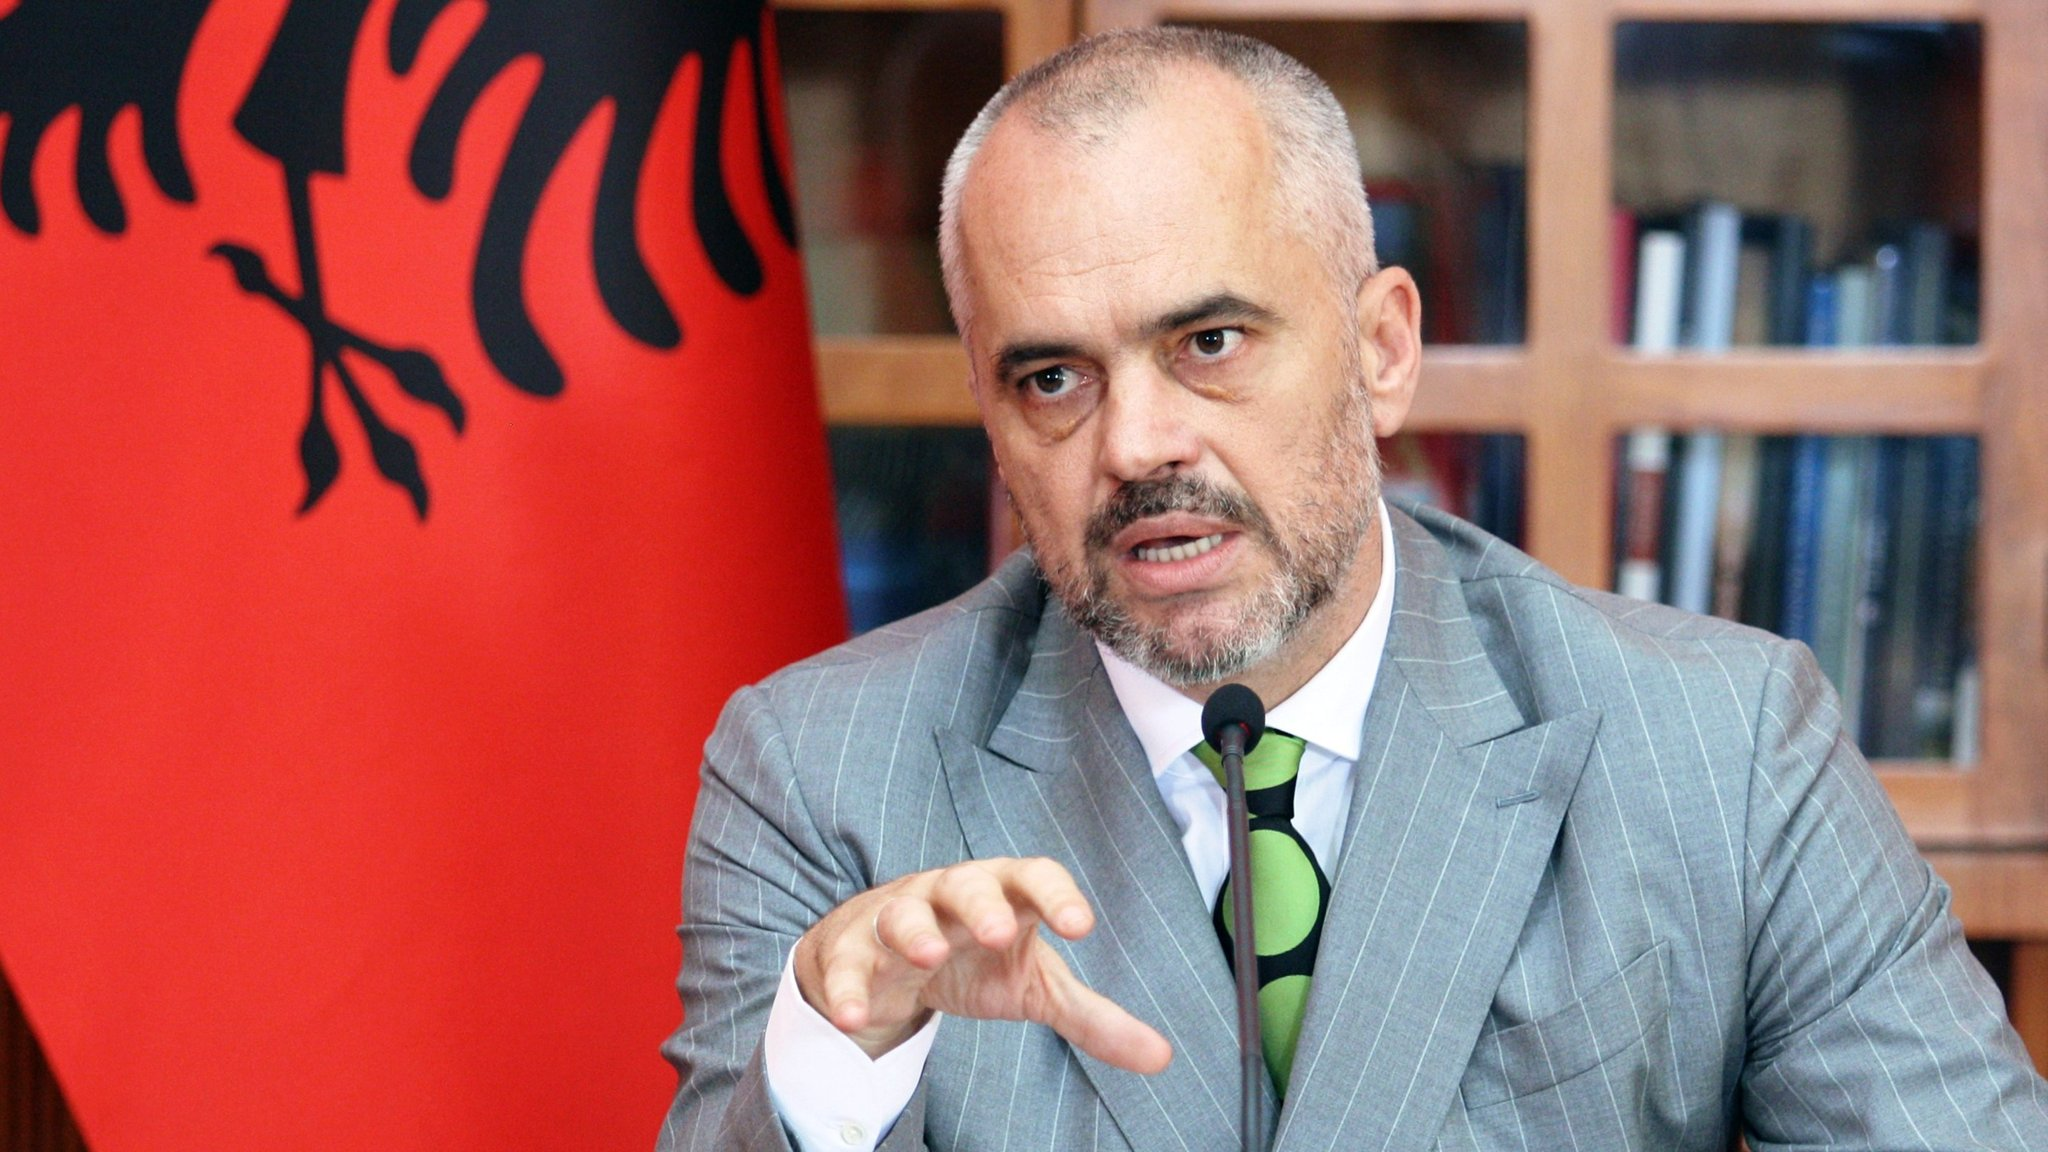 Albania: The ball is in the opposition's court for Electoral Reform, Rama says